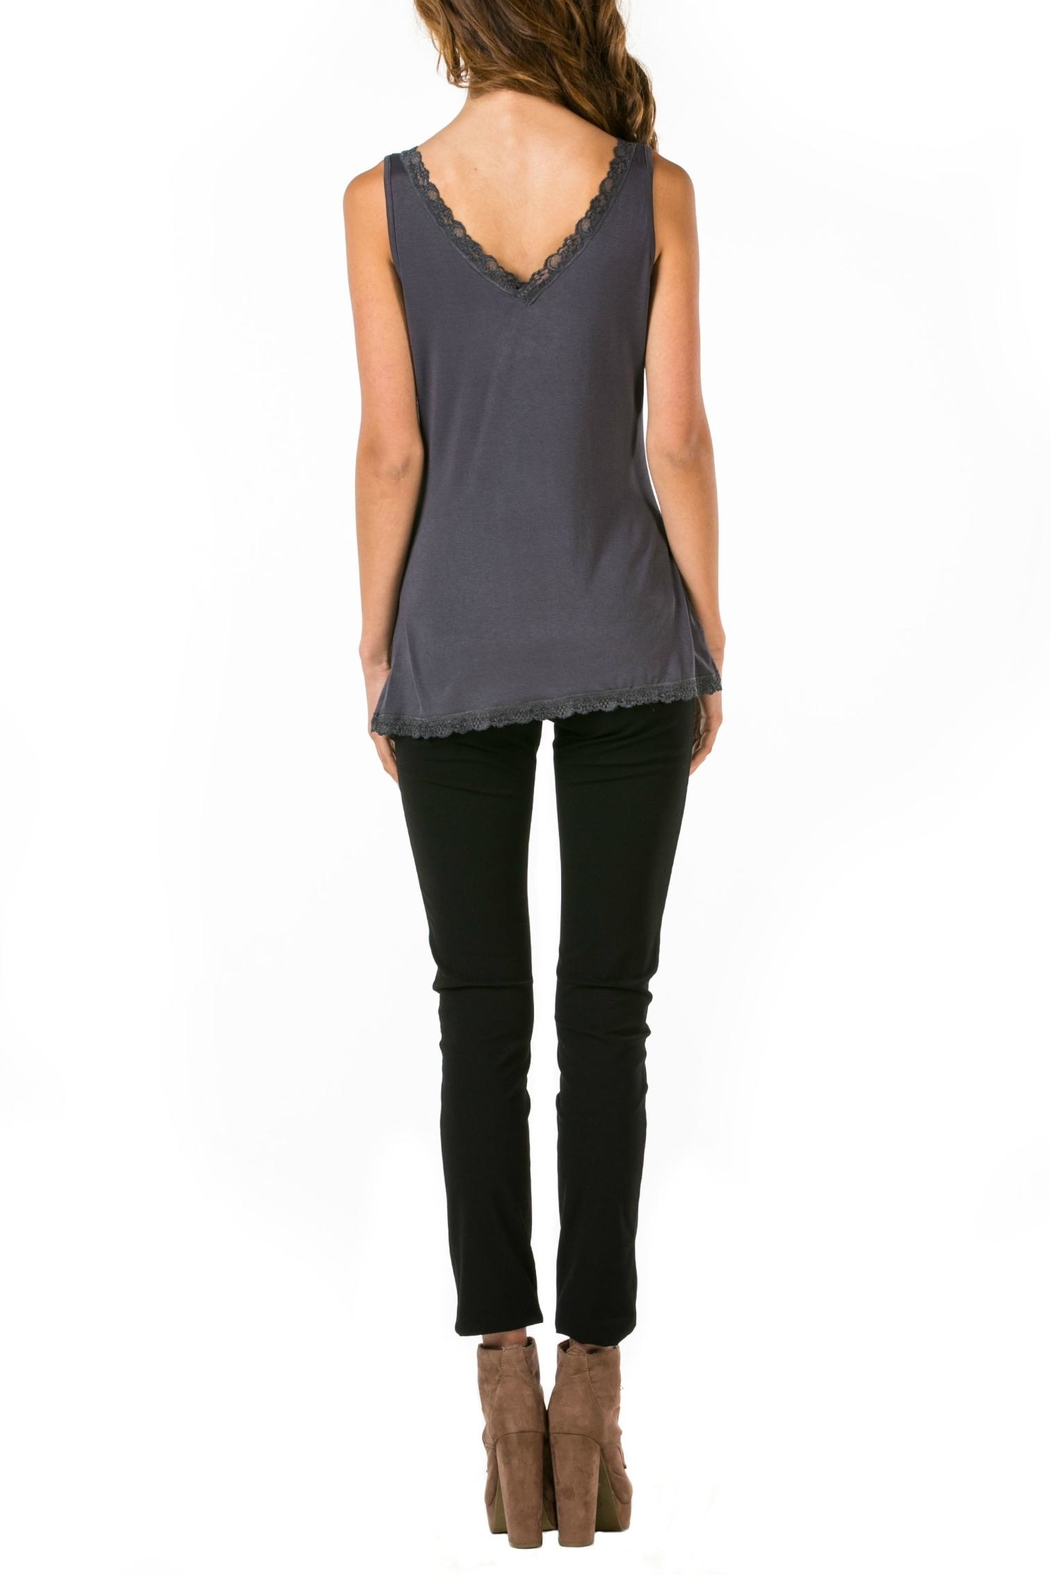 Mur Monoreno Lace Edged Top - Front Full Image